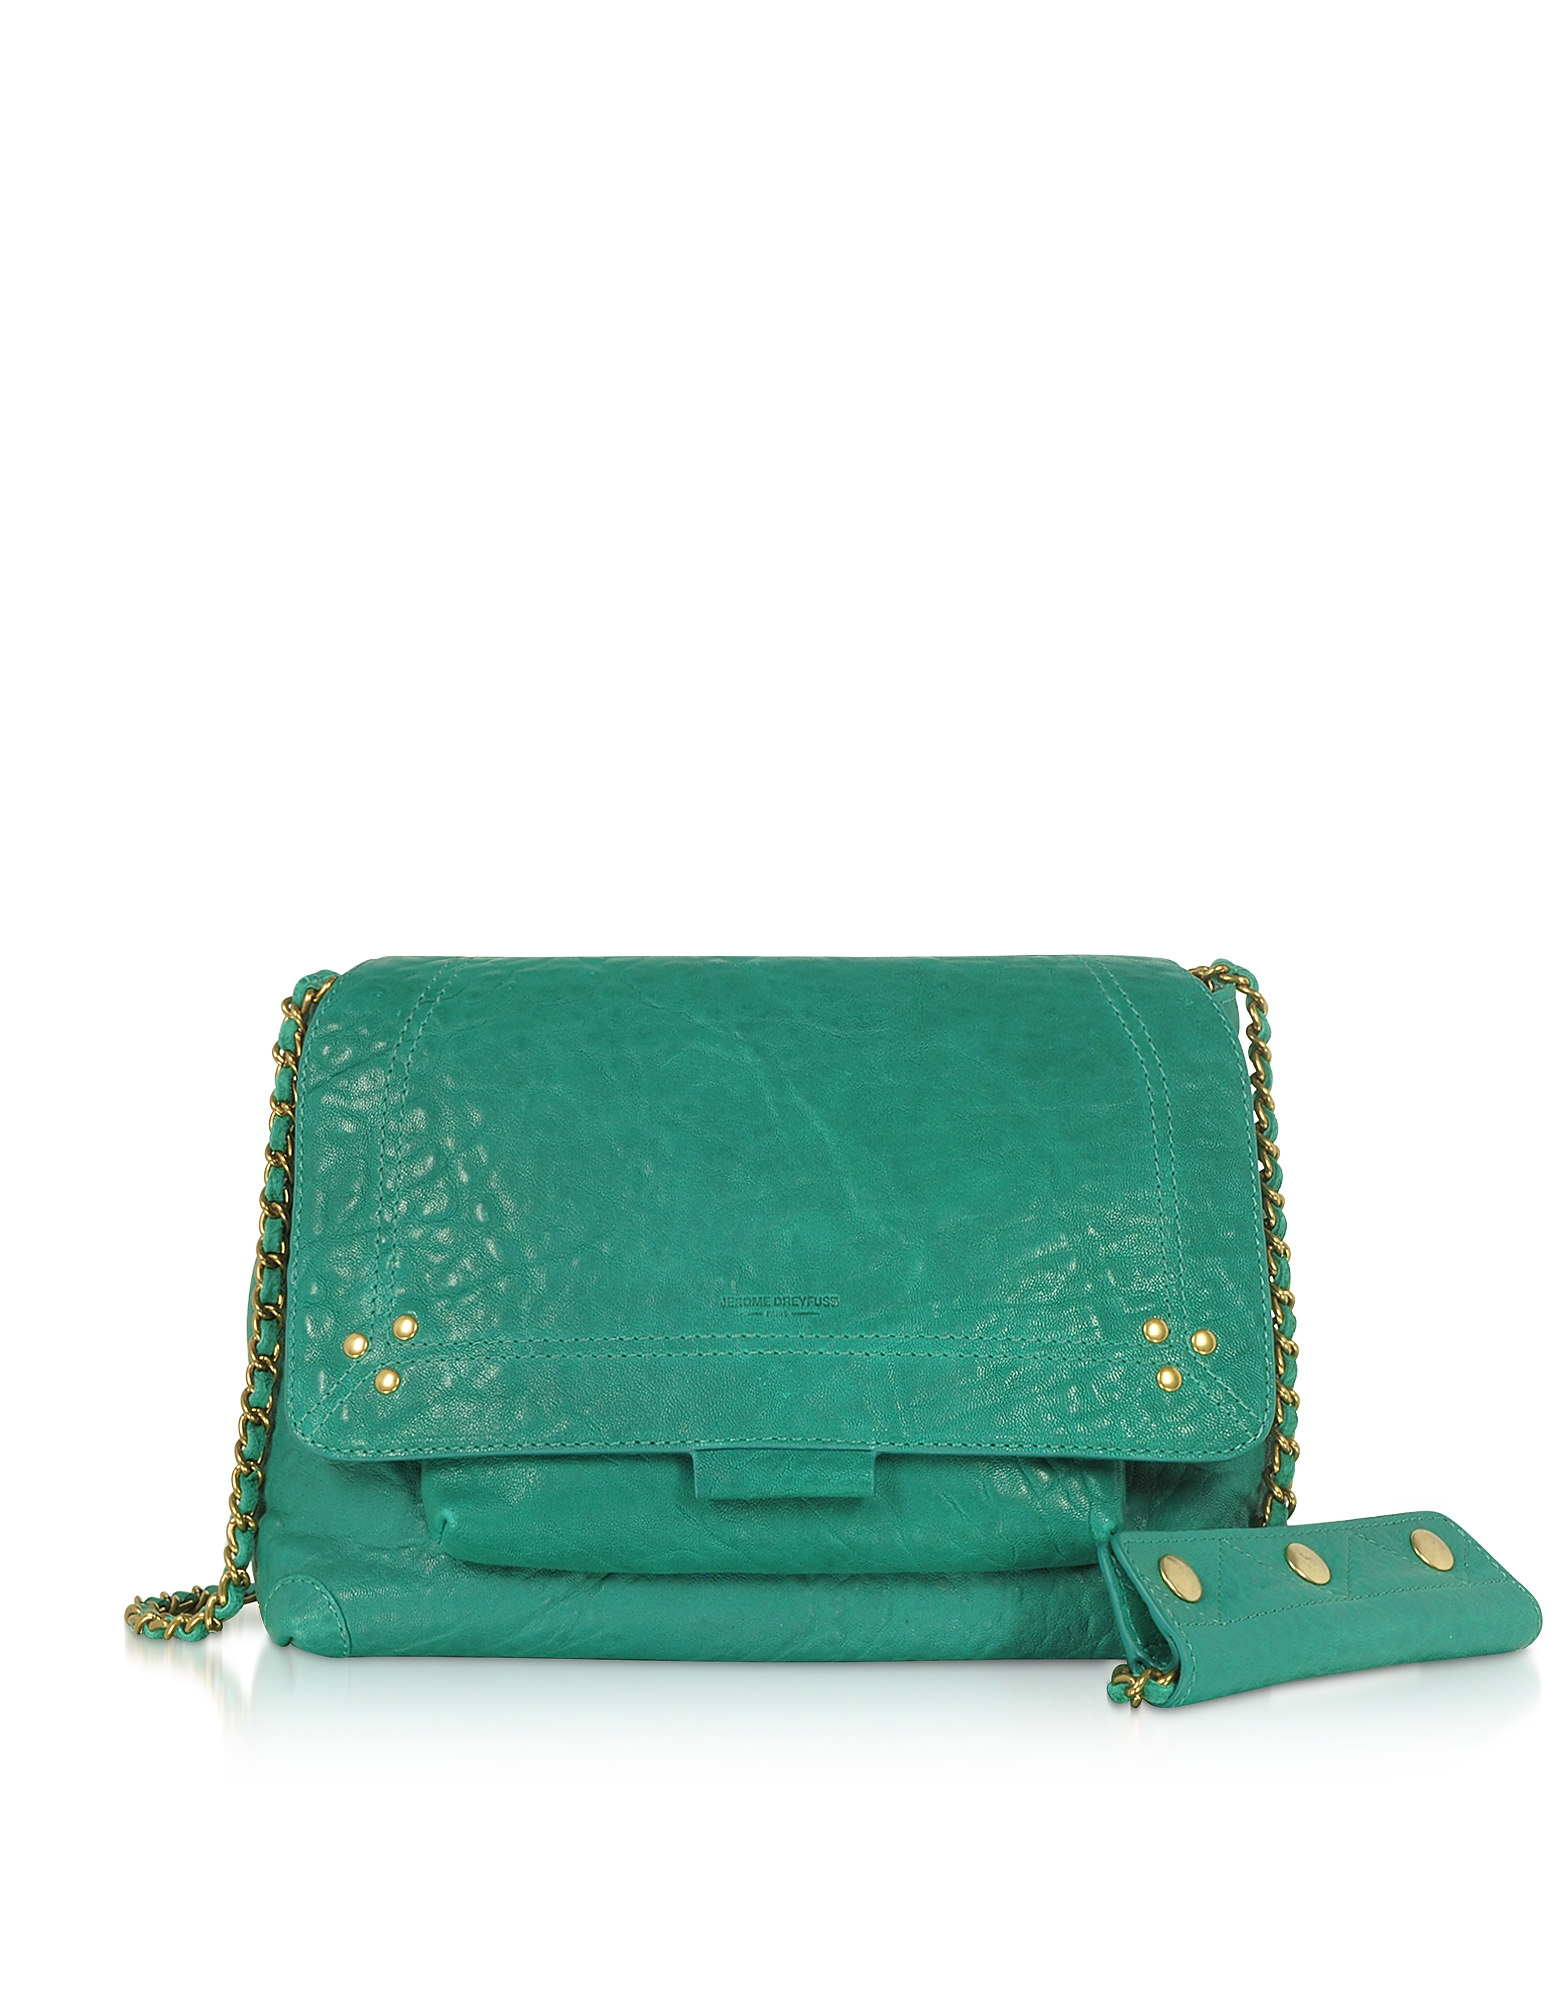 Lulu M Lagoon Leather Shoulder Bag